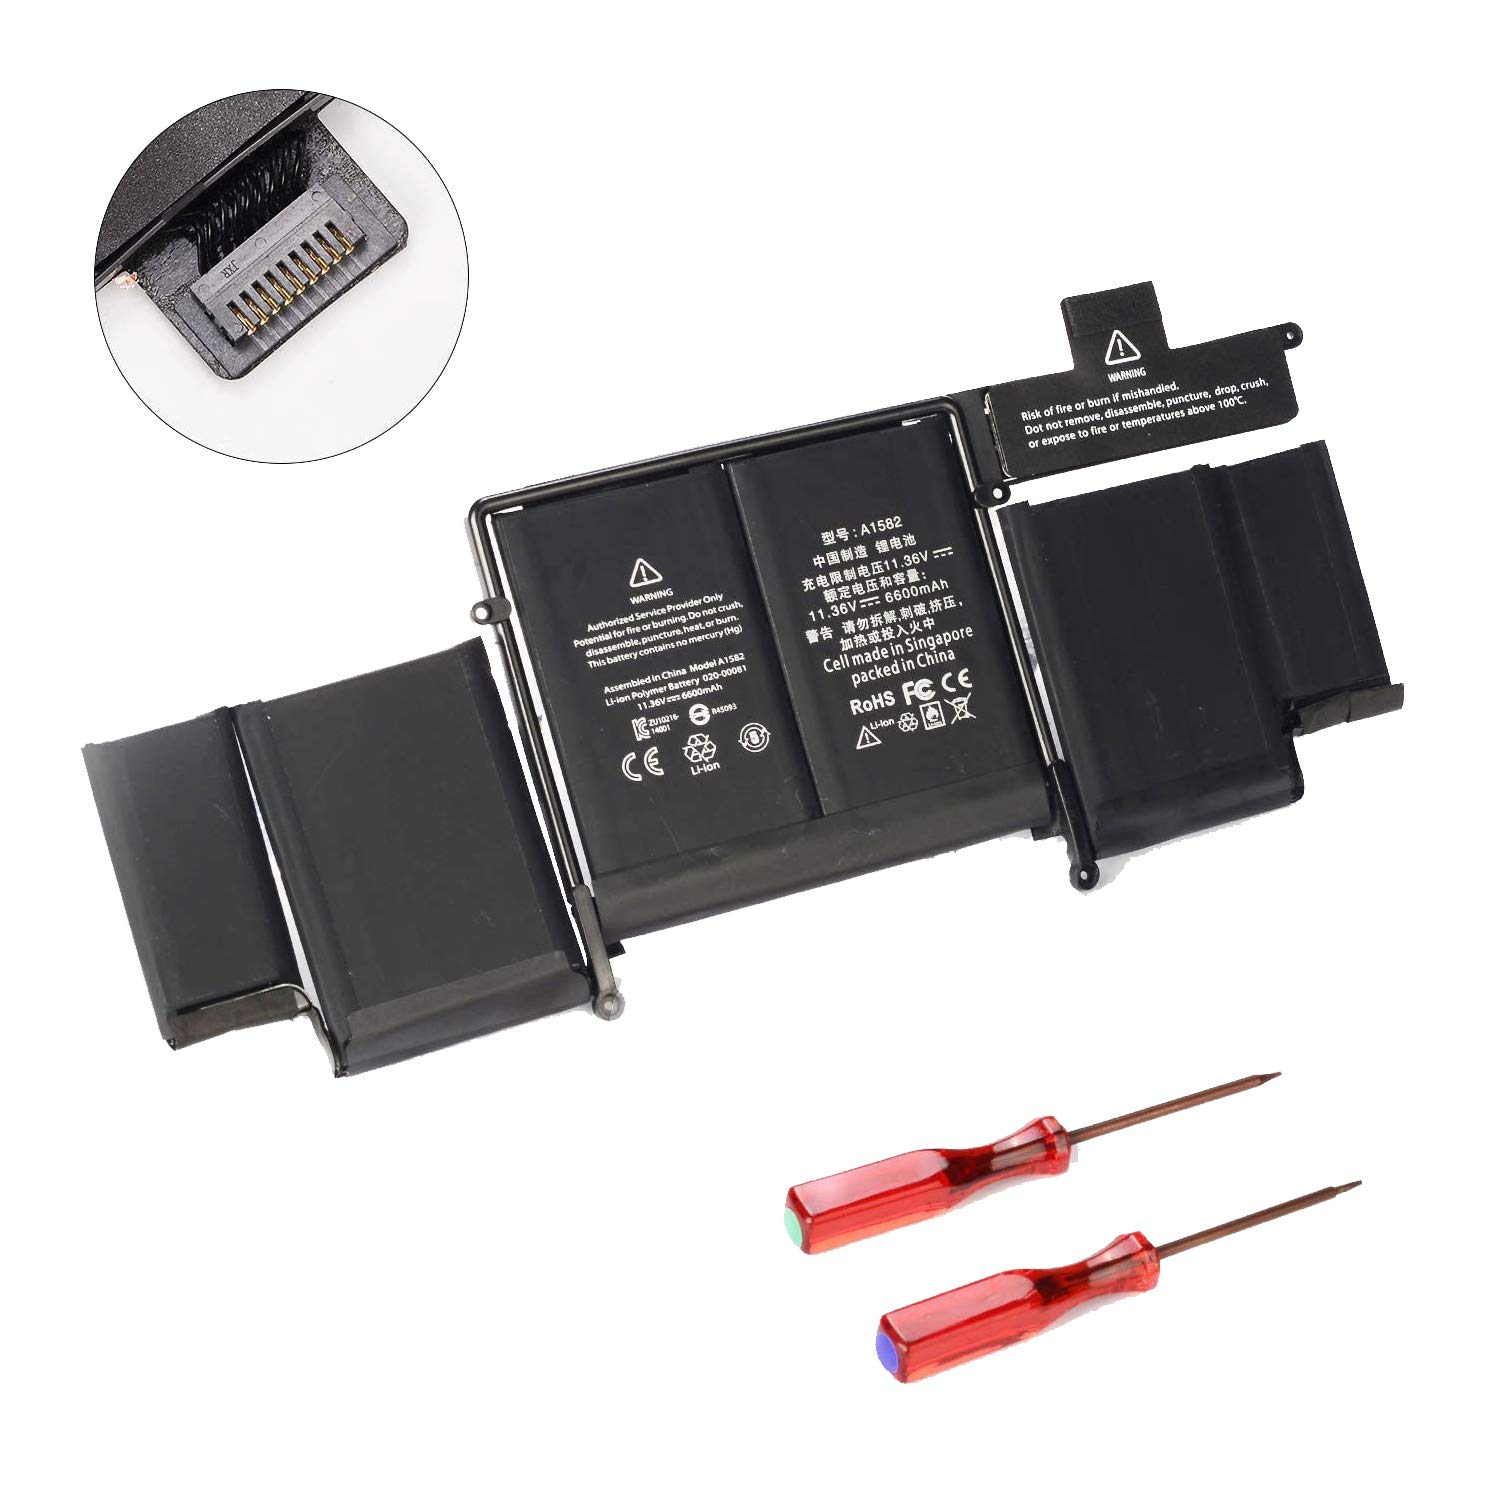 """POWERWOO New Laptop Battery A1582 for 2015 MacBook Pro 13"""" ME864 ME865; A1493(2013 2014 Version) Battery for A1502 with 2 Screwdrivers [6600mAh/ 11.34V /74.9Wh]"""